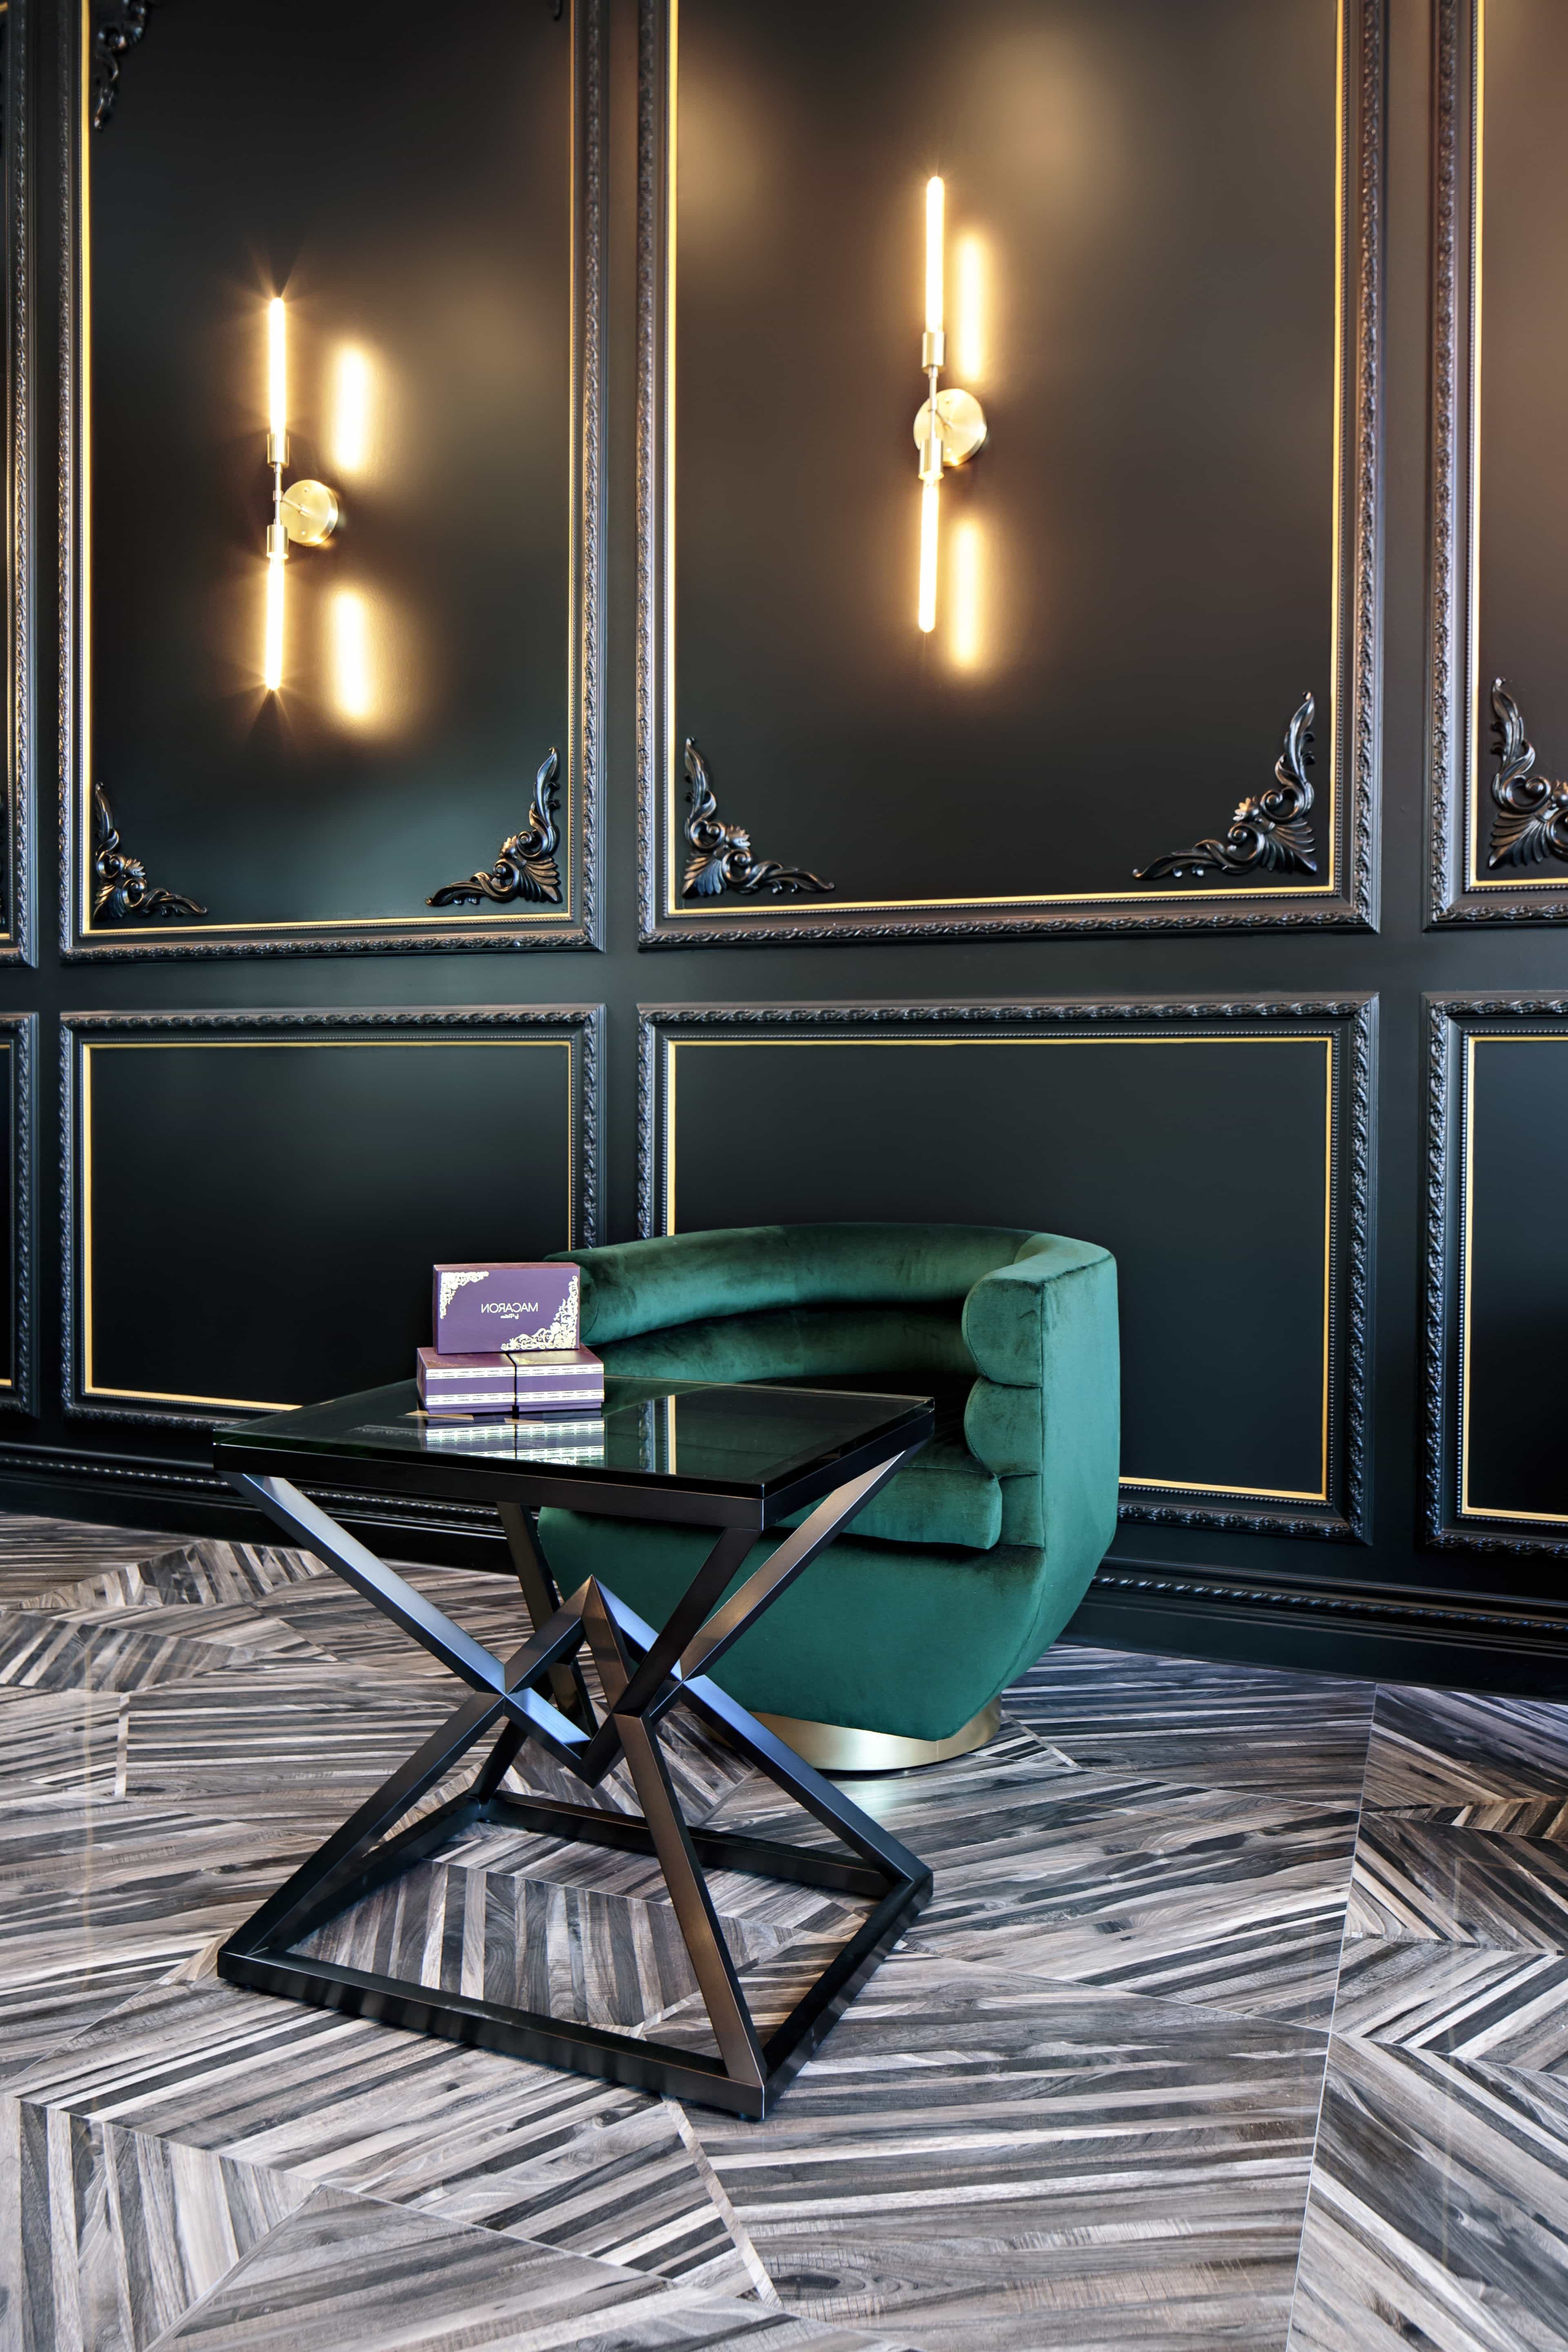 Gothic Sitting Space With Black Wall Panelling And Prism Coffee